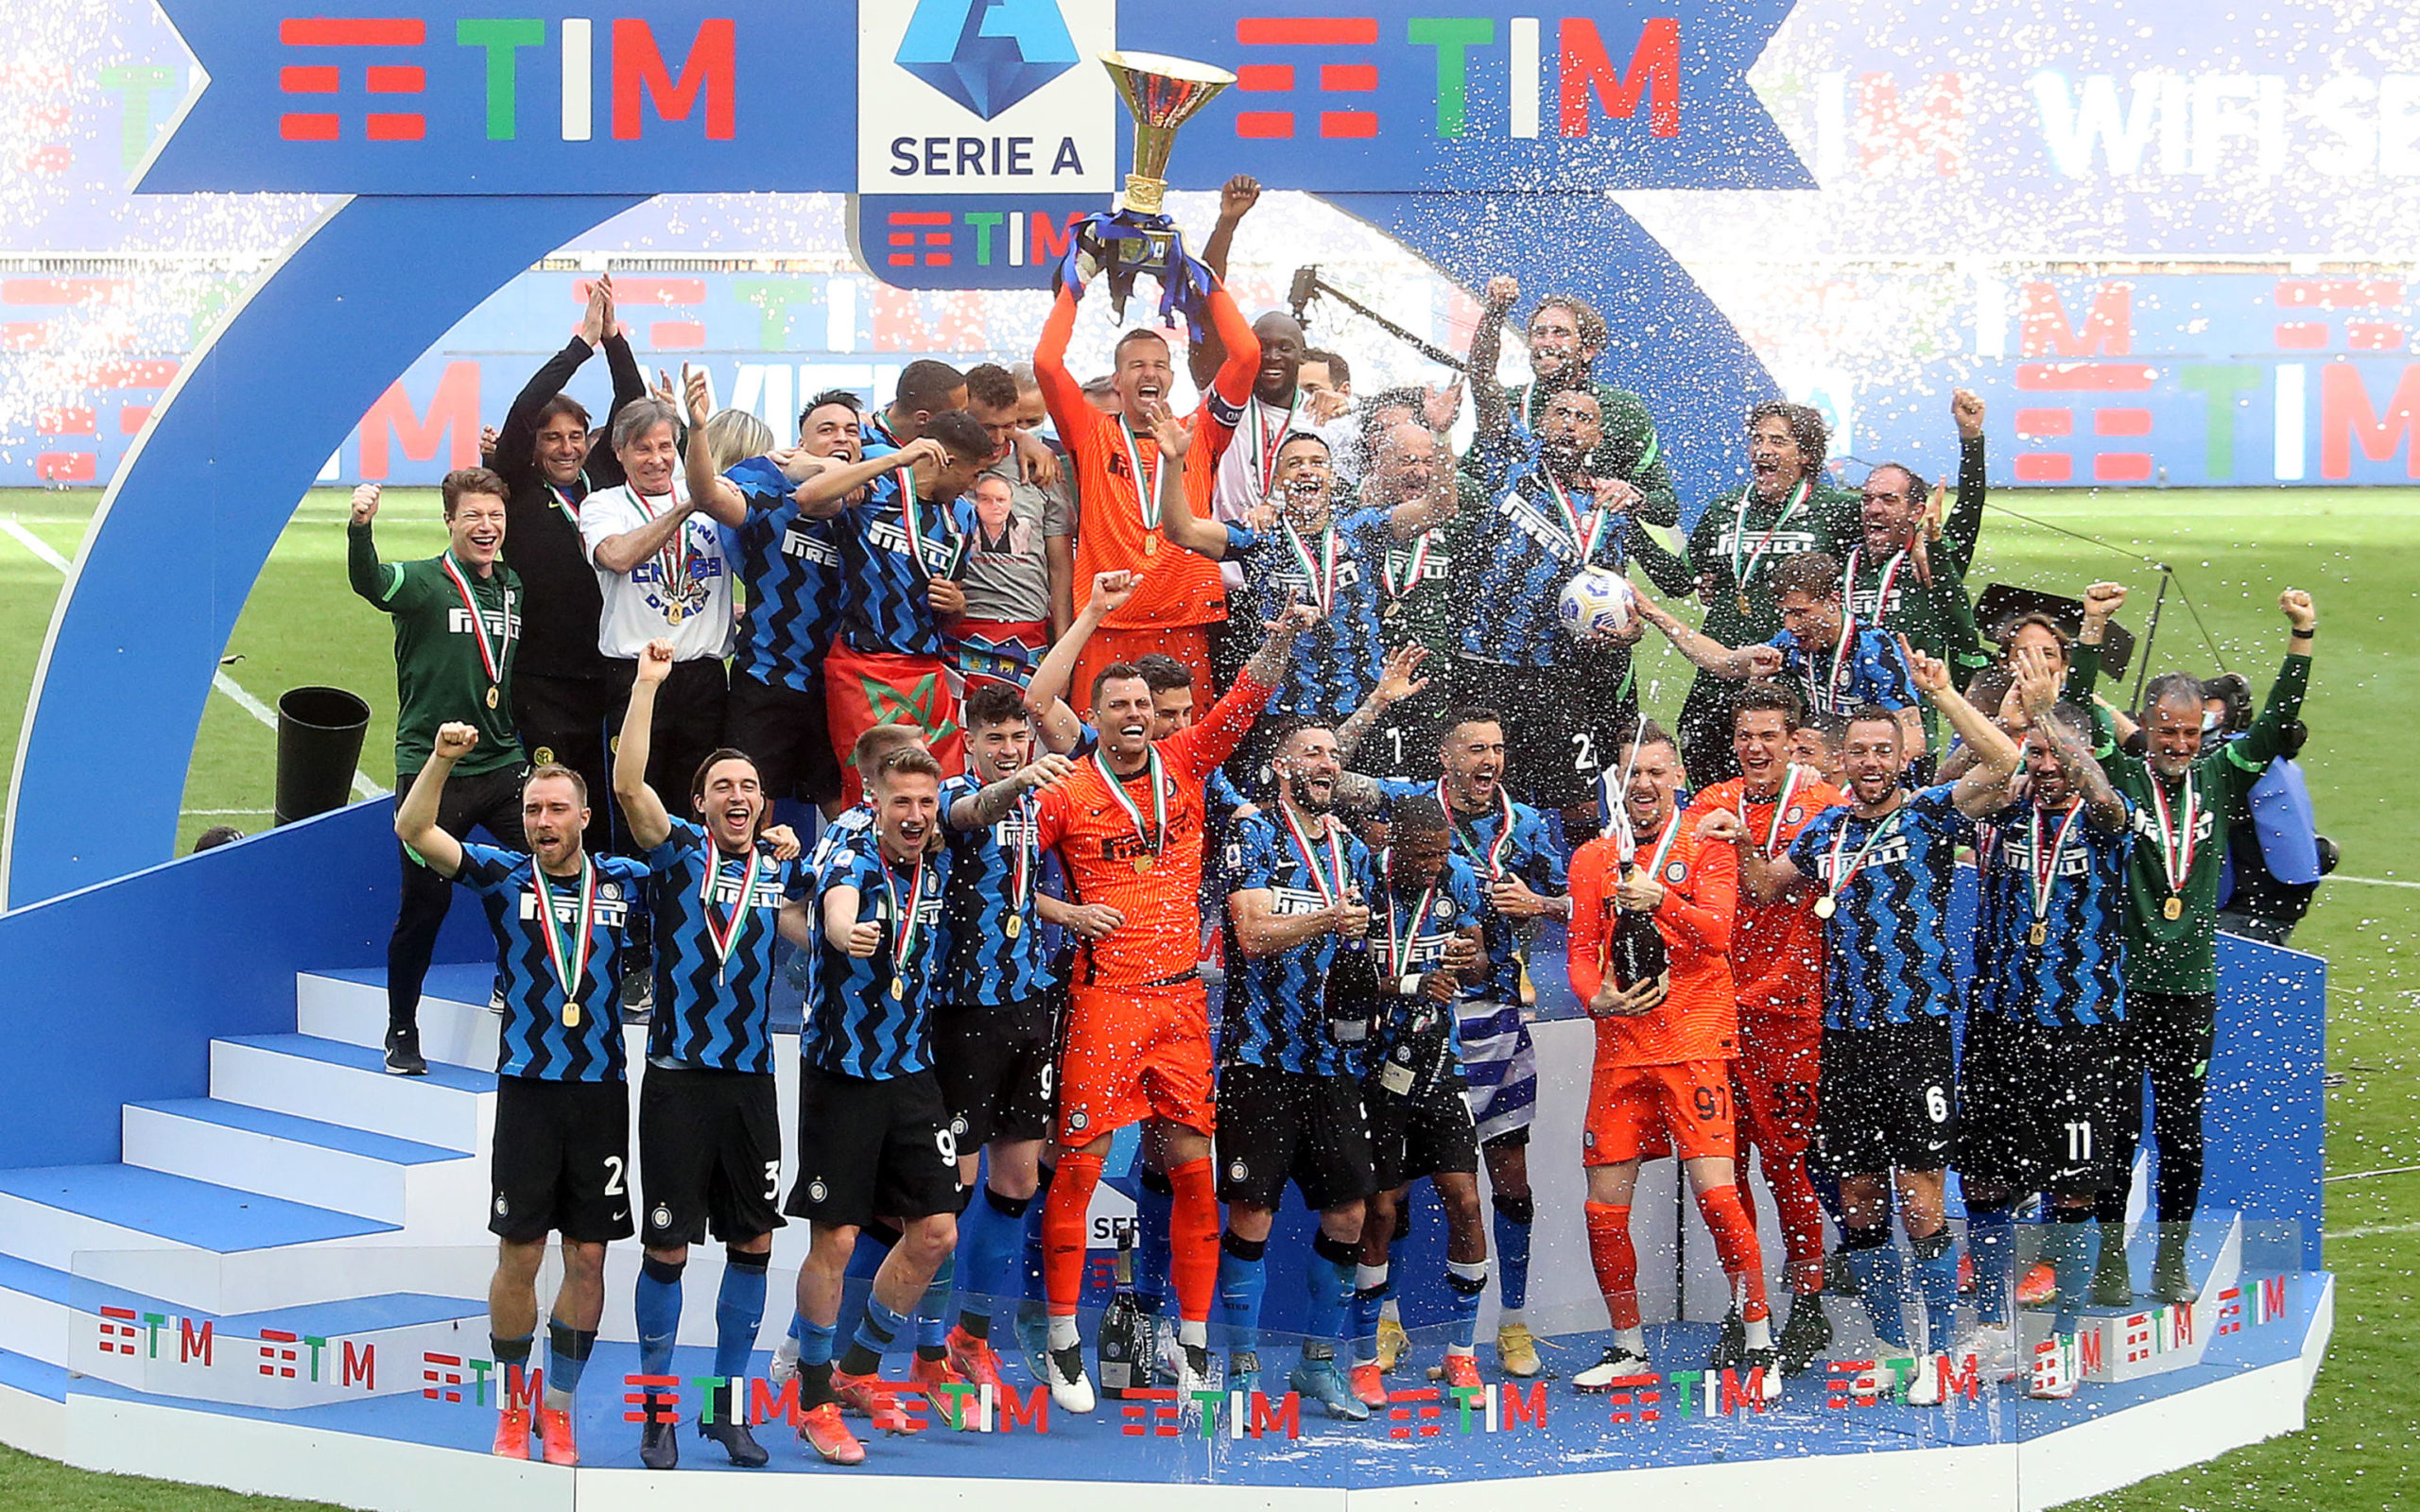 Inter celebrating winning their first Scudetto in 11 years